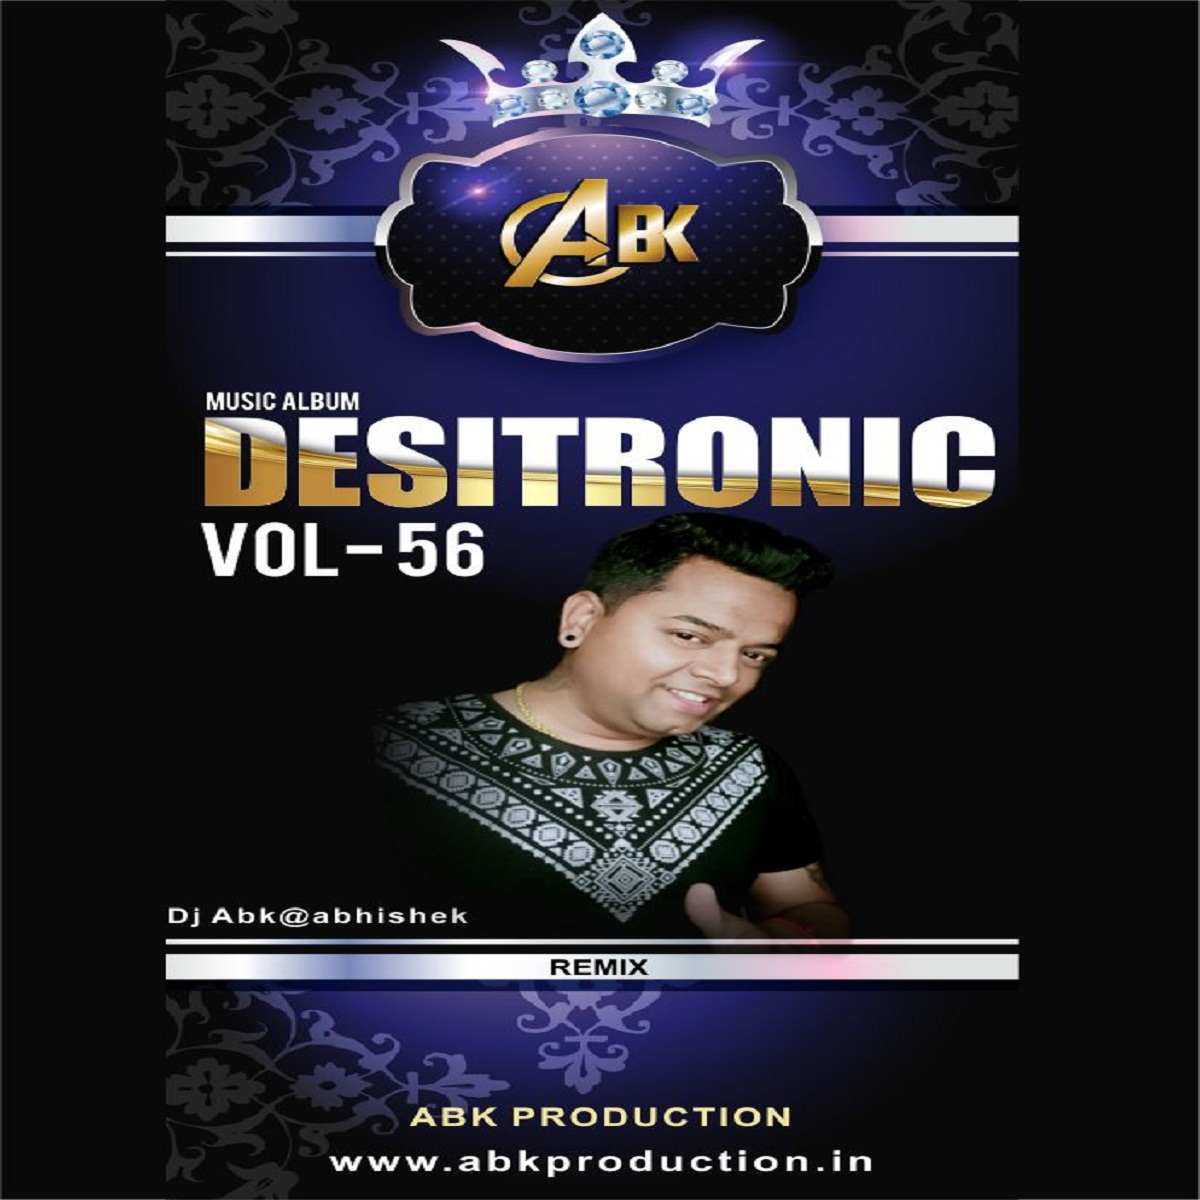 Desitronic Vol.56 - ABK Production